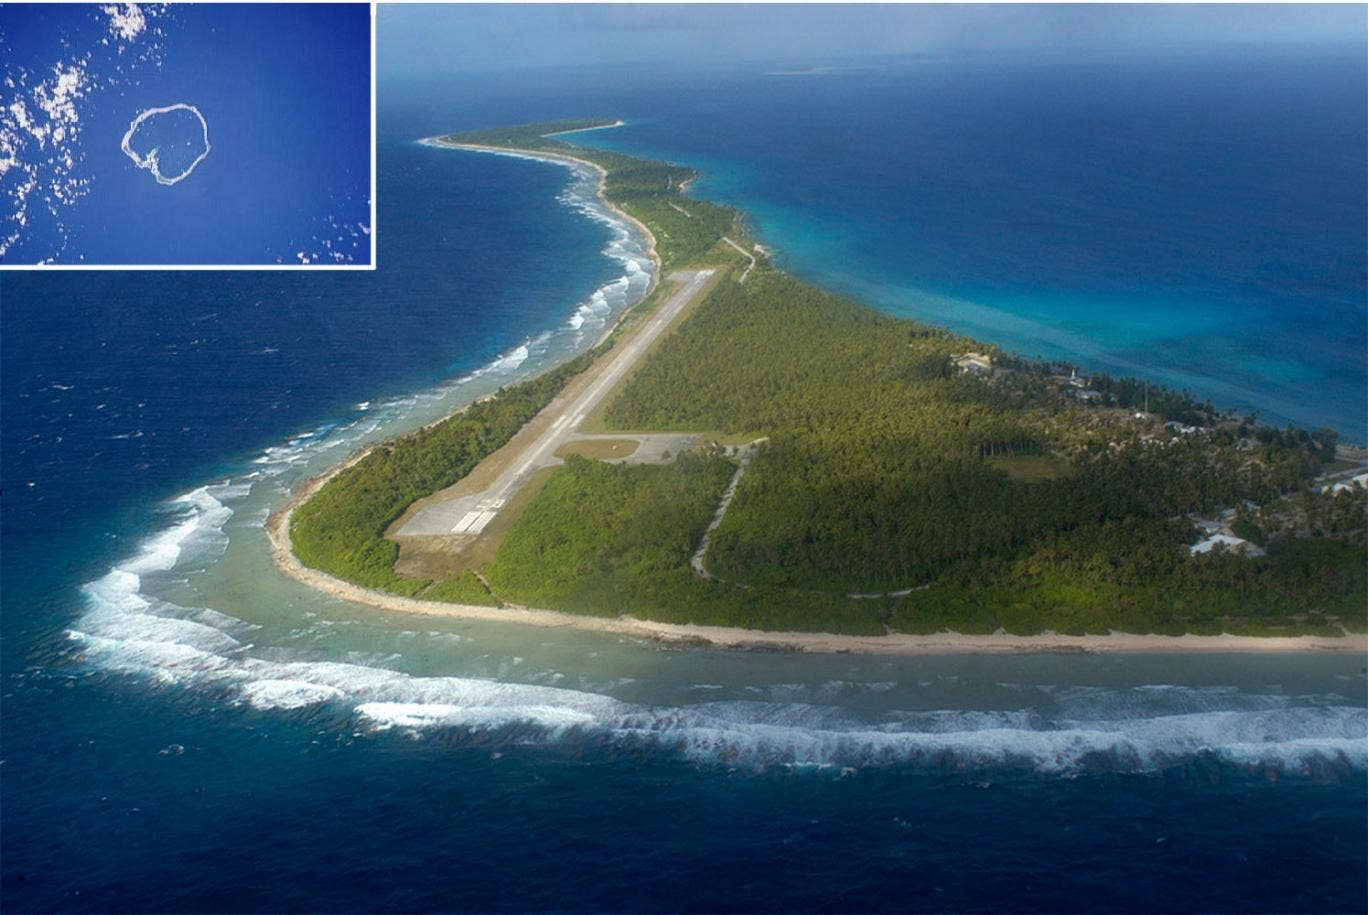 Jose Ivan was found washed up on Ebon Atoll (inset) which is part of the Marshall Islands